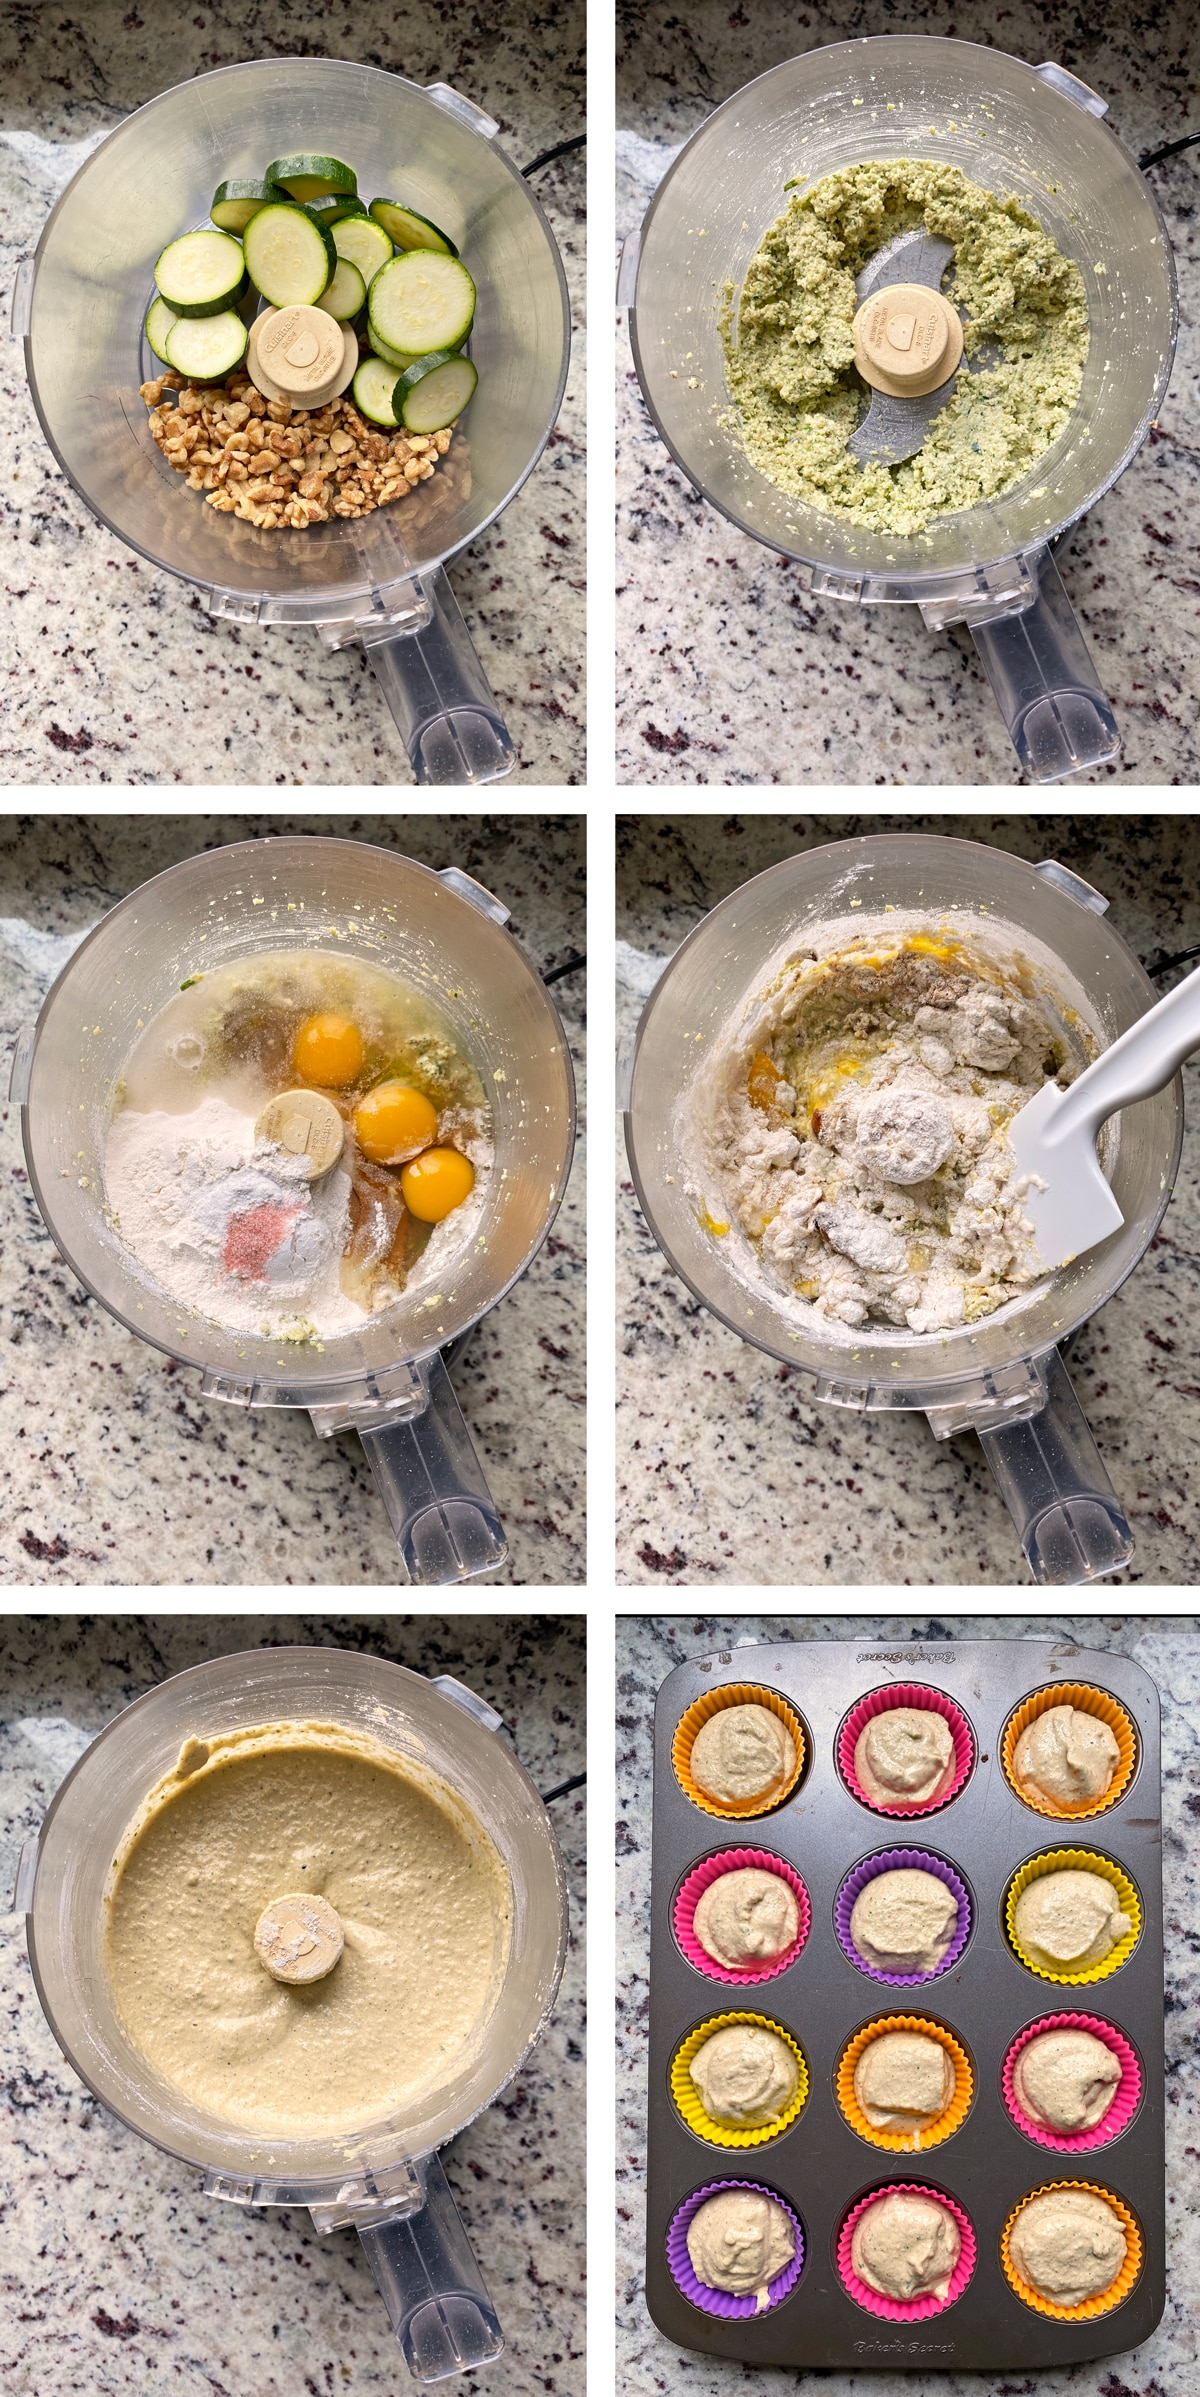 how to make the muffin batter